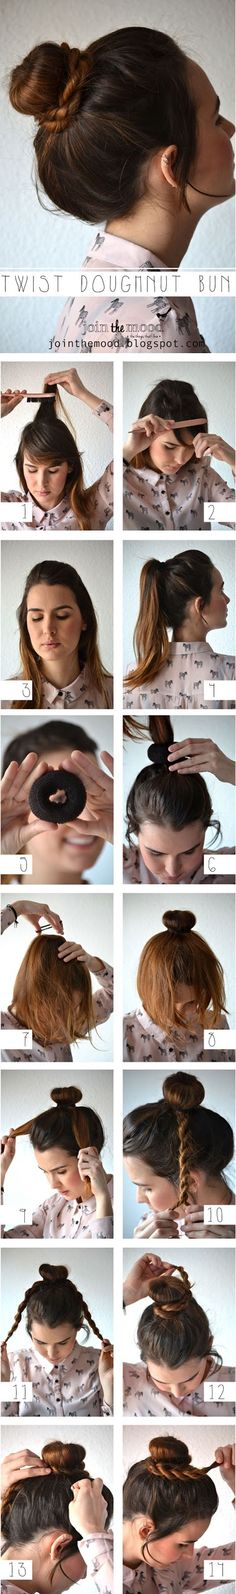 How To Make Twist Doughnut Bun For Your Hair